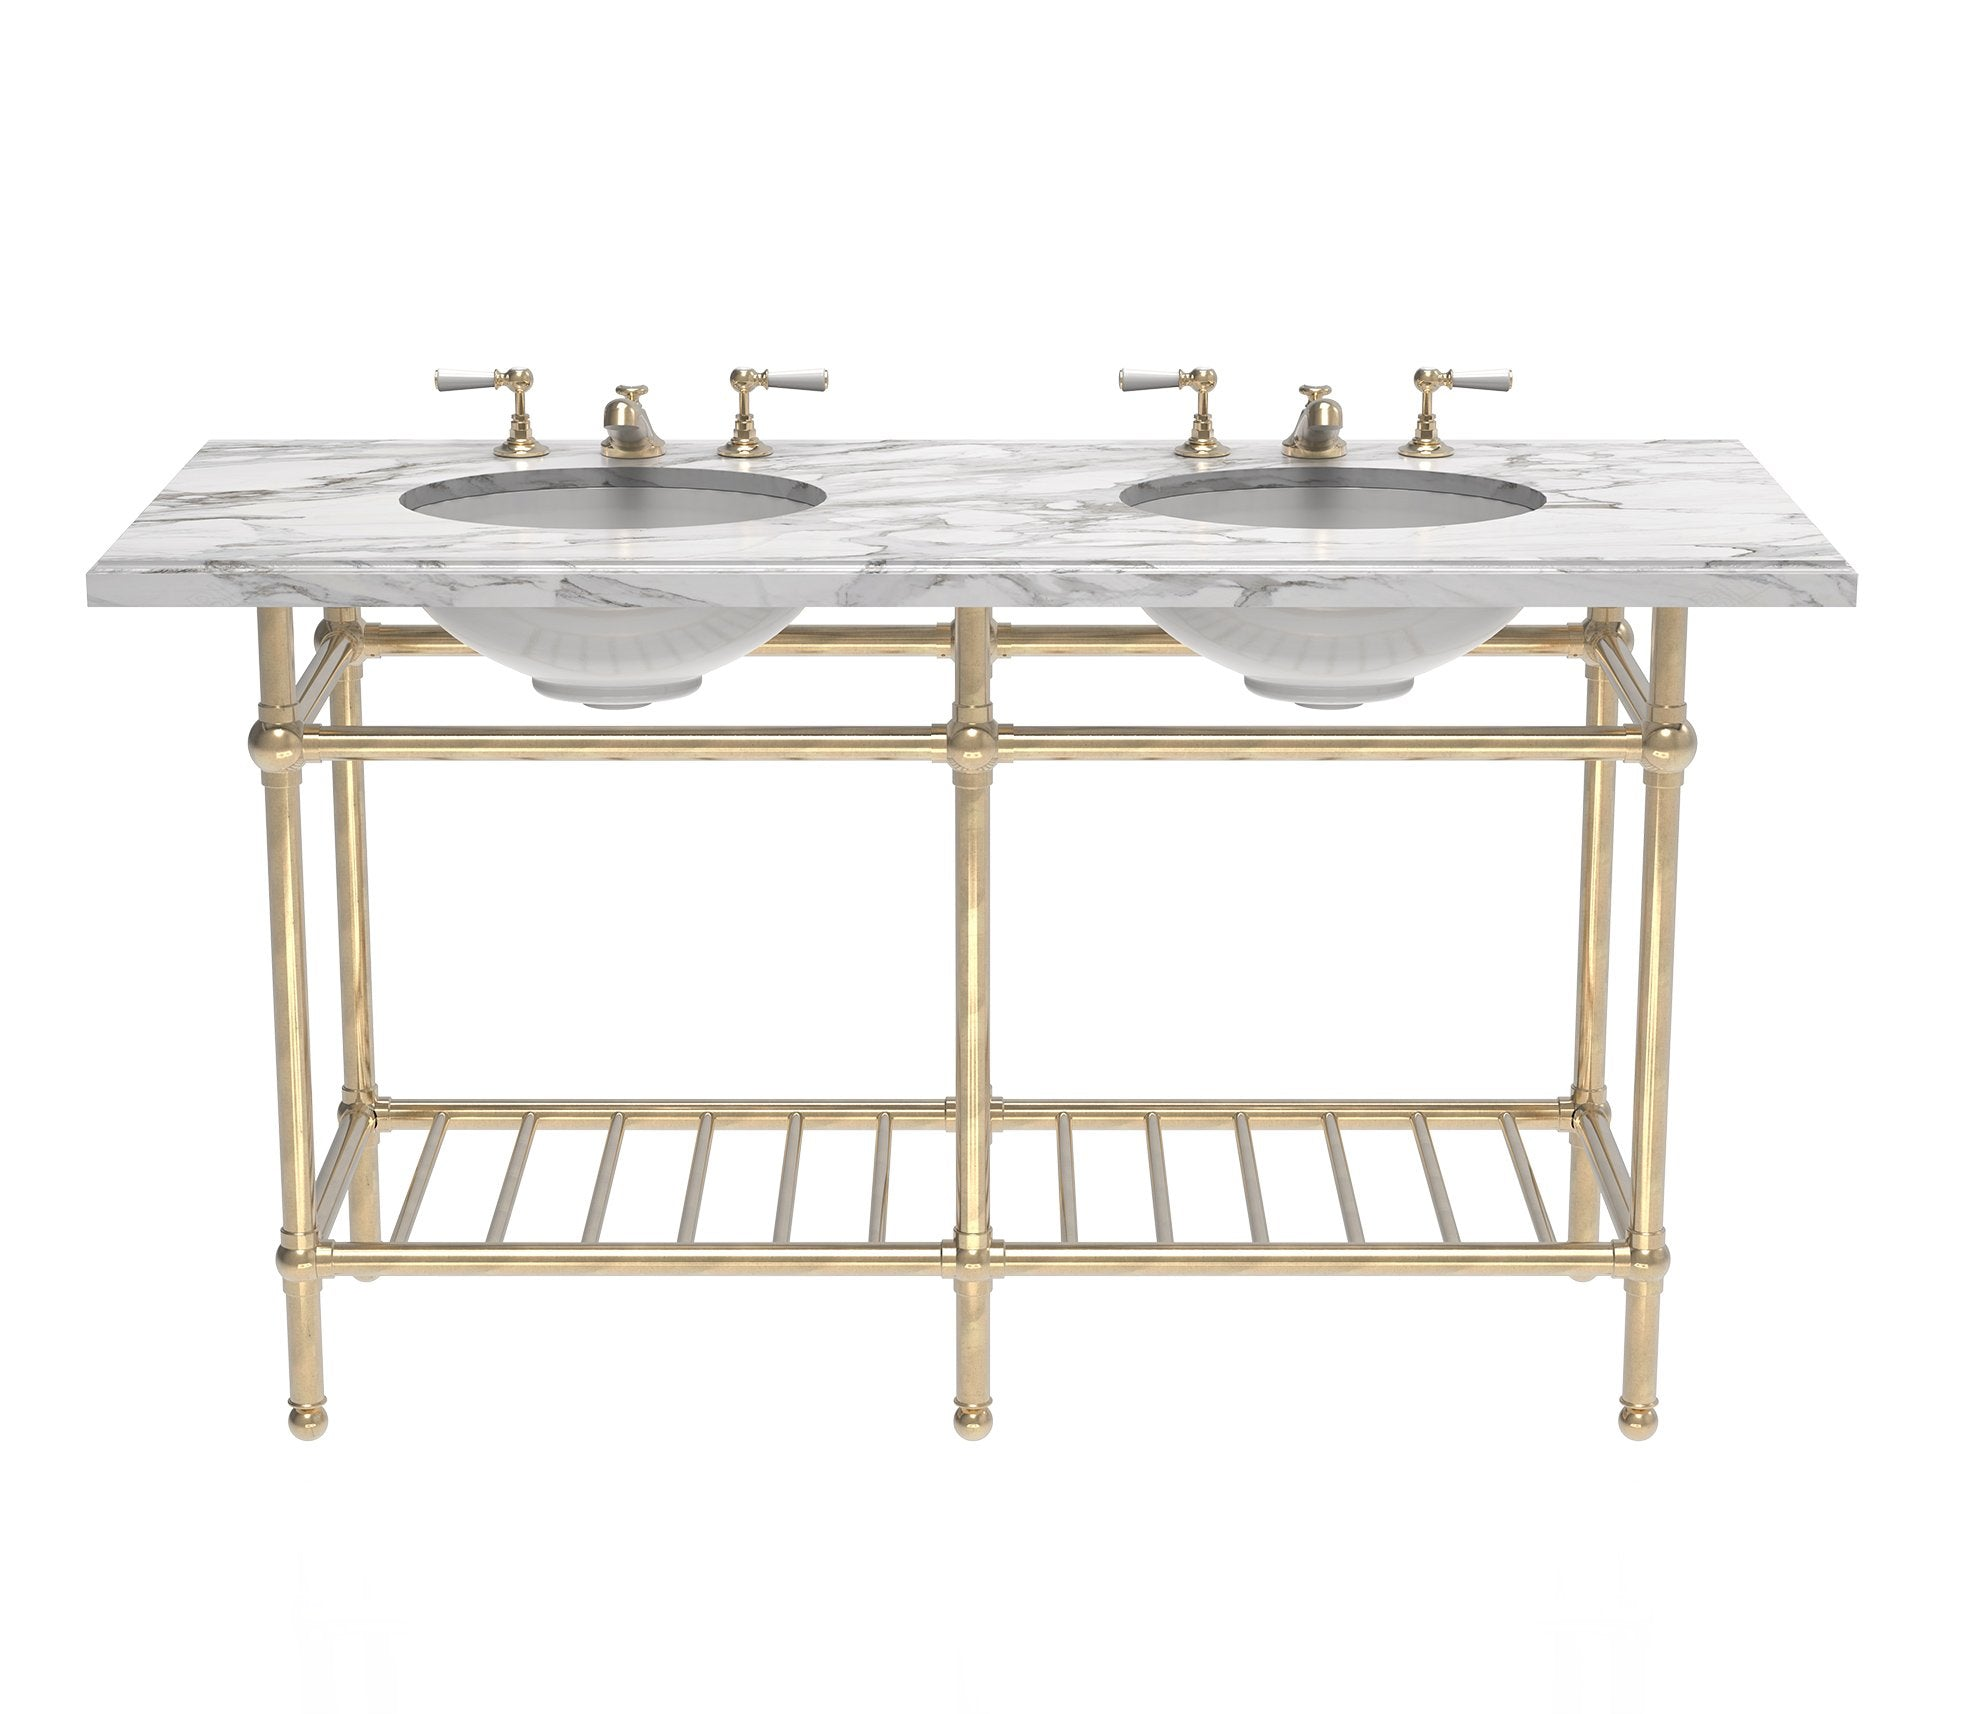 Gotham Washstand with Metal Shelf Double Product Image 1